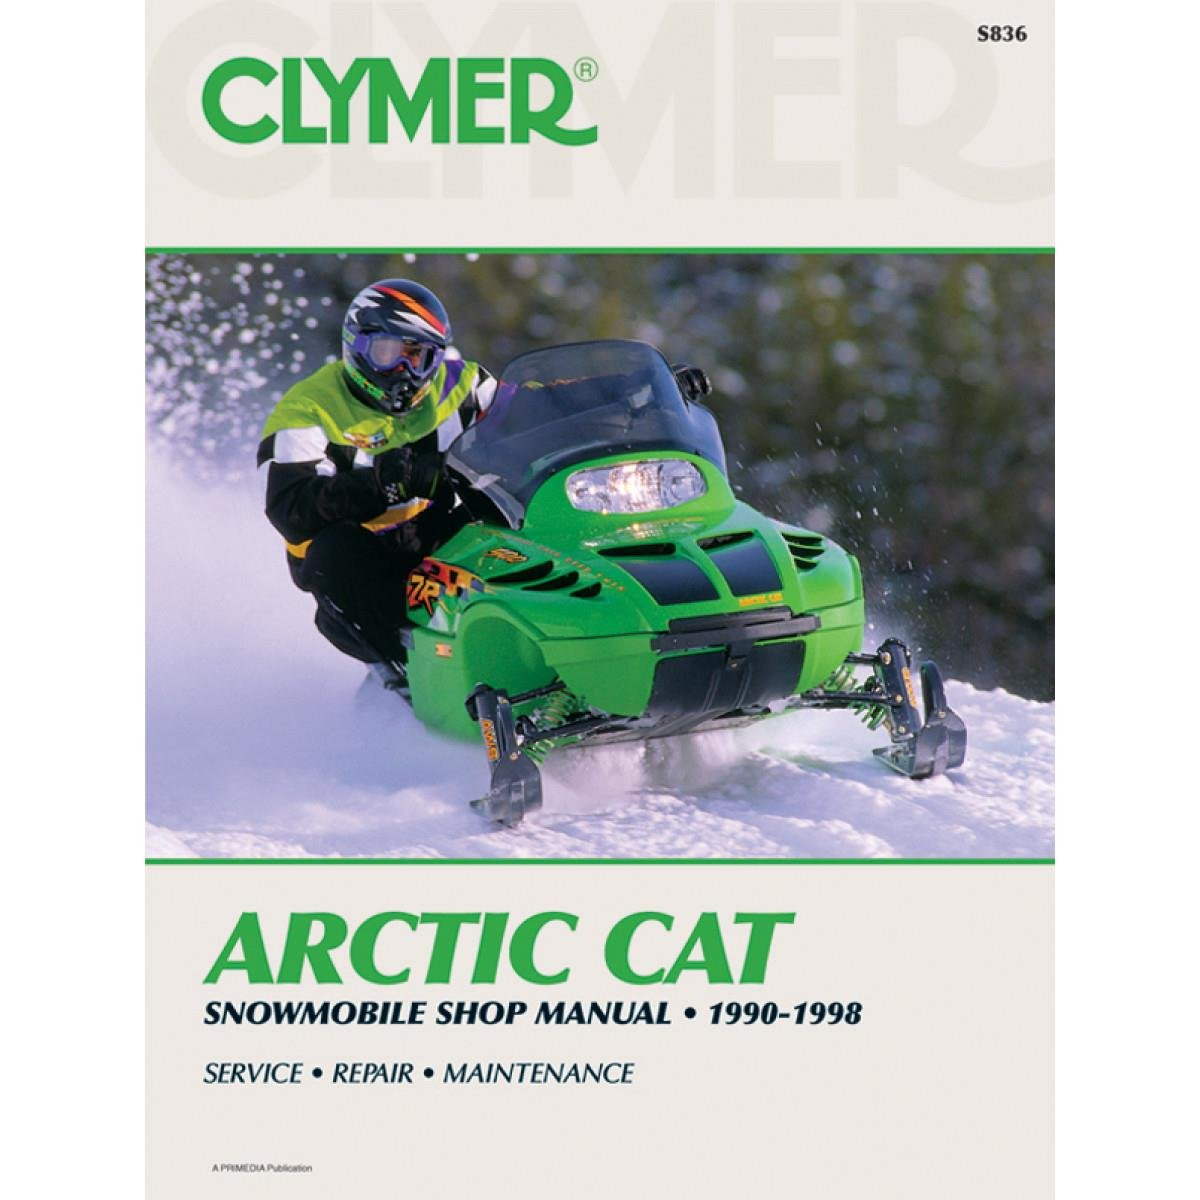 Amazon.com: Clymer Artic Cat Snowmobile (1990-1998) (53007): Home Audio &  Theater